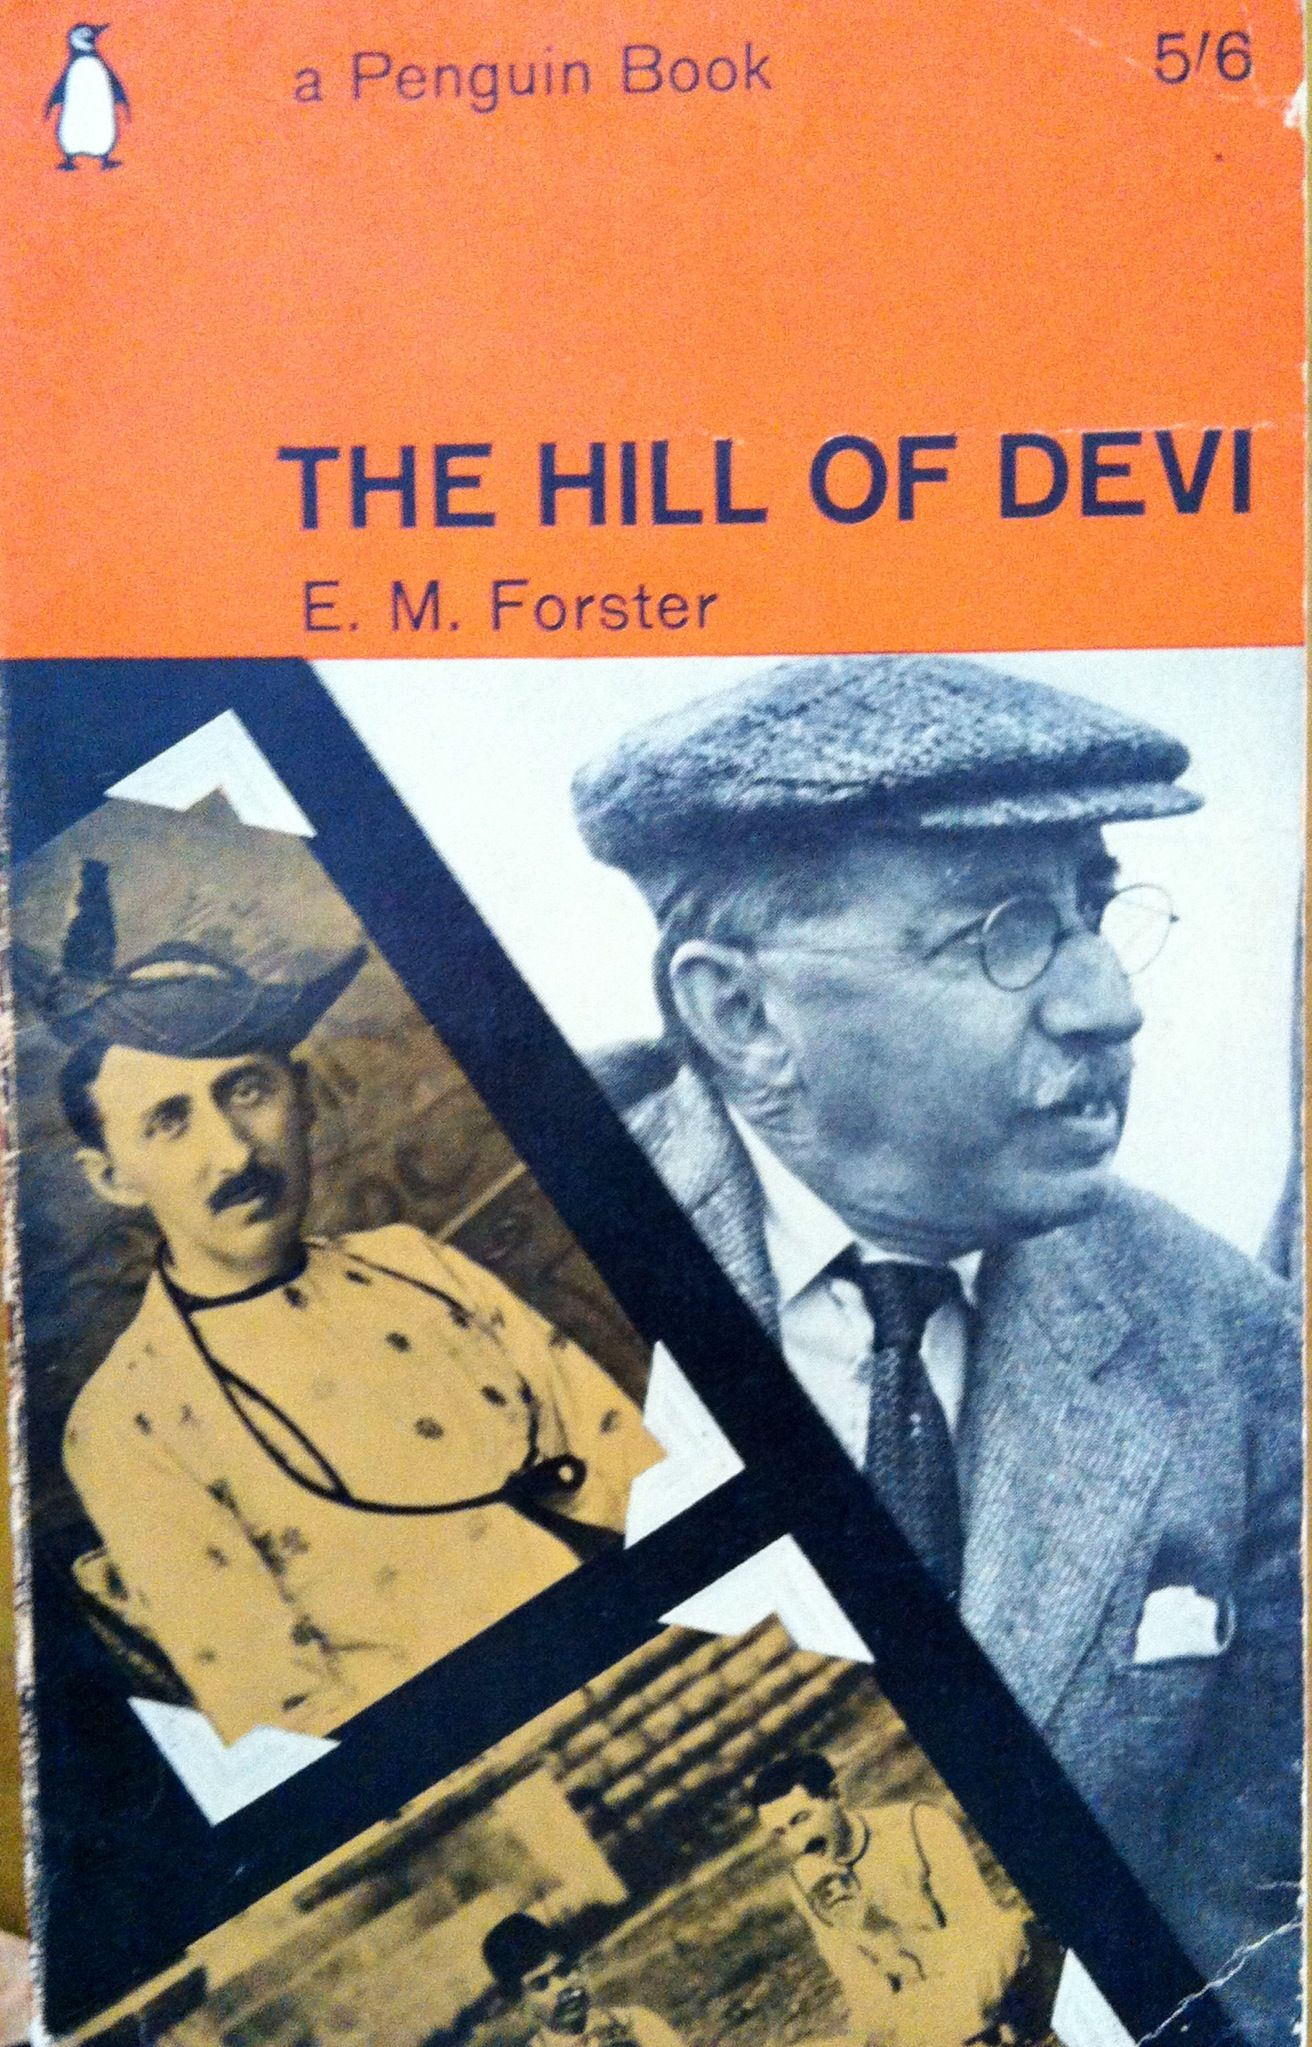 The Hill of Devi | E.M. Forster